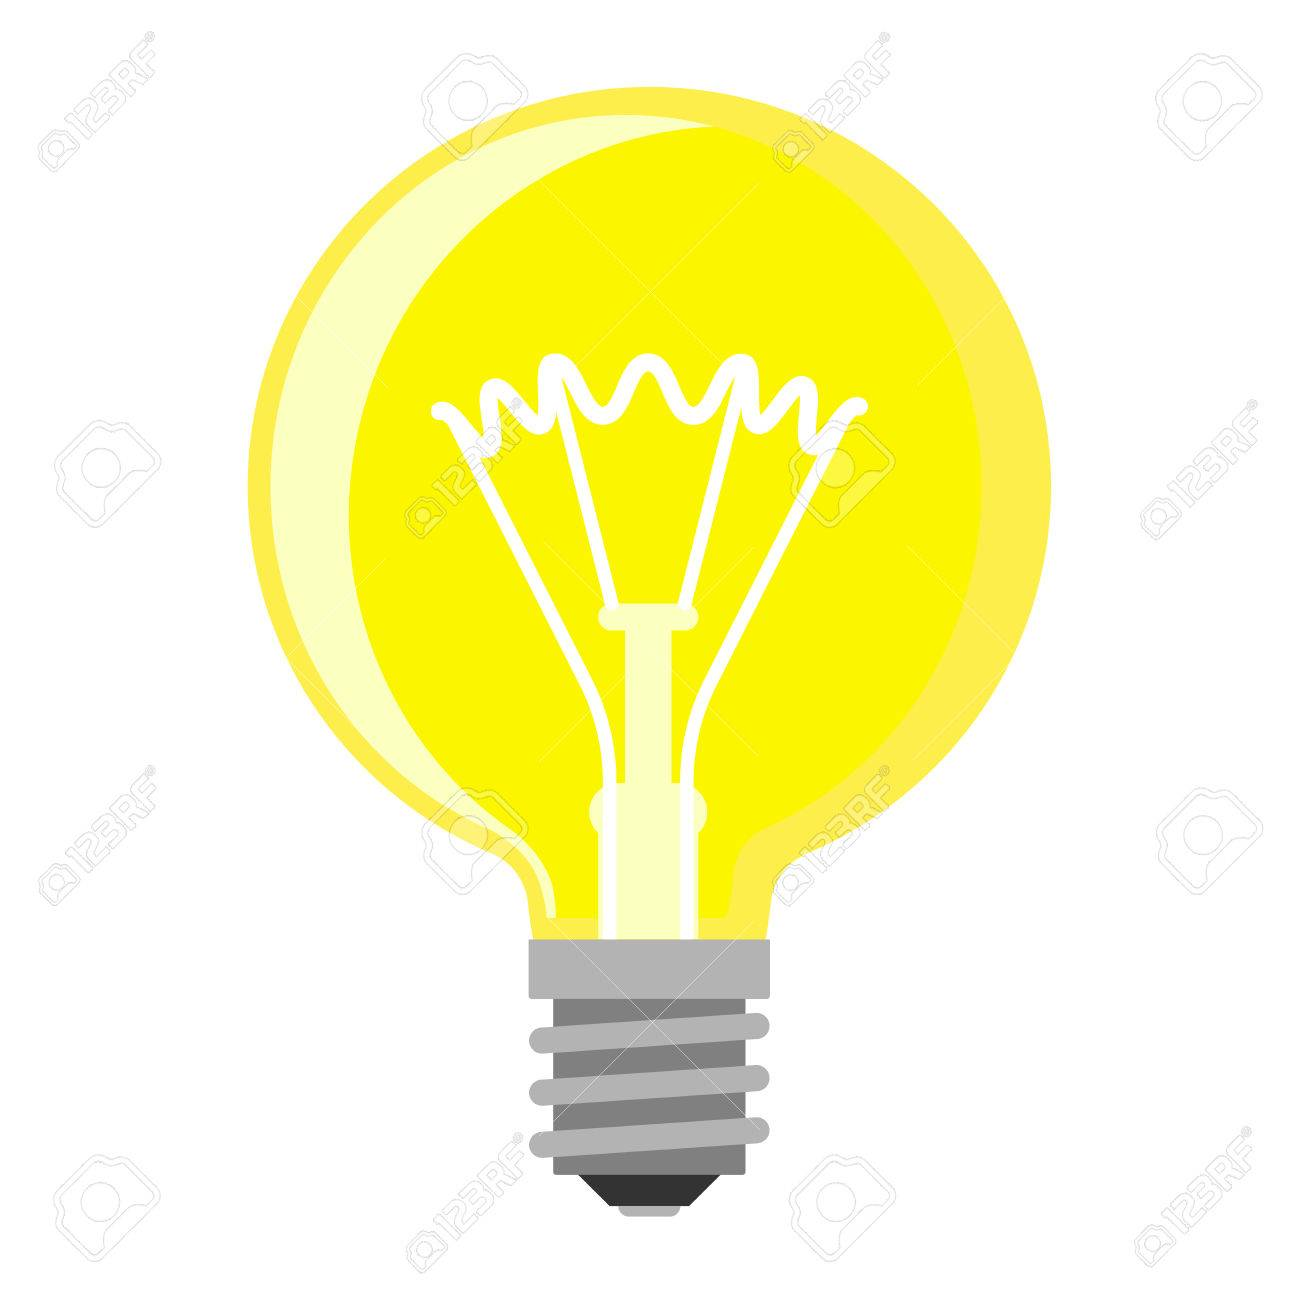 cartoon lamp electric and bright cartoon interior light tool rh 123rf com vector lighthouse vector lightning